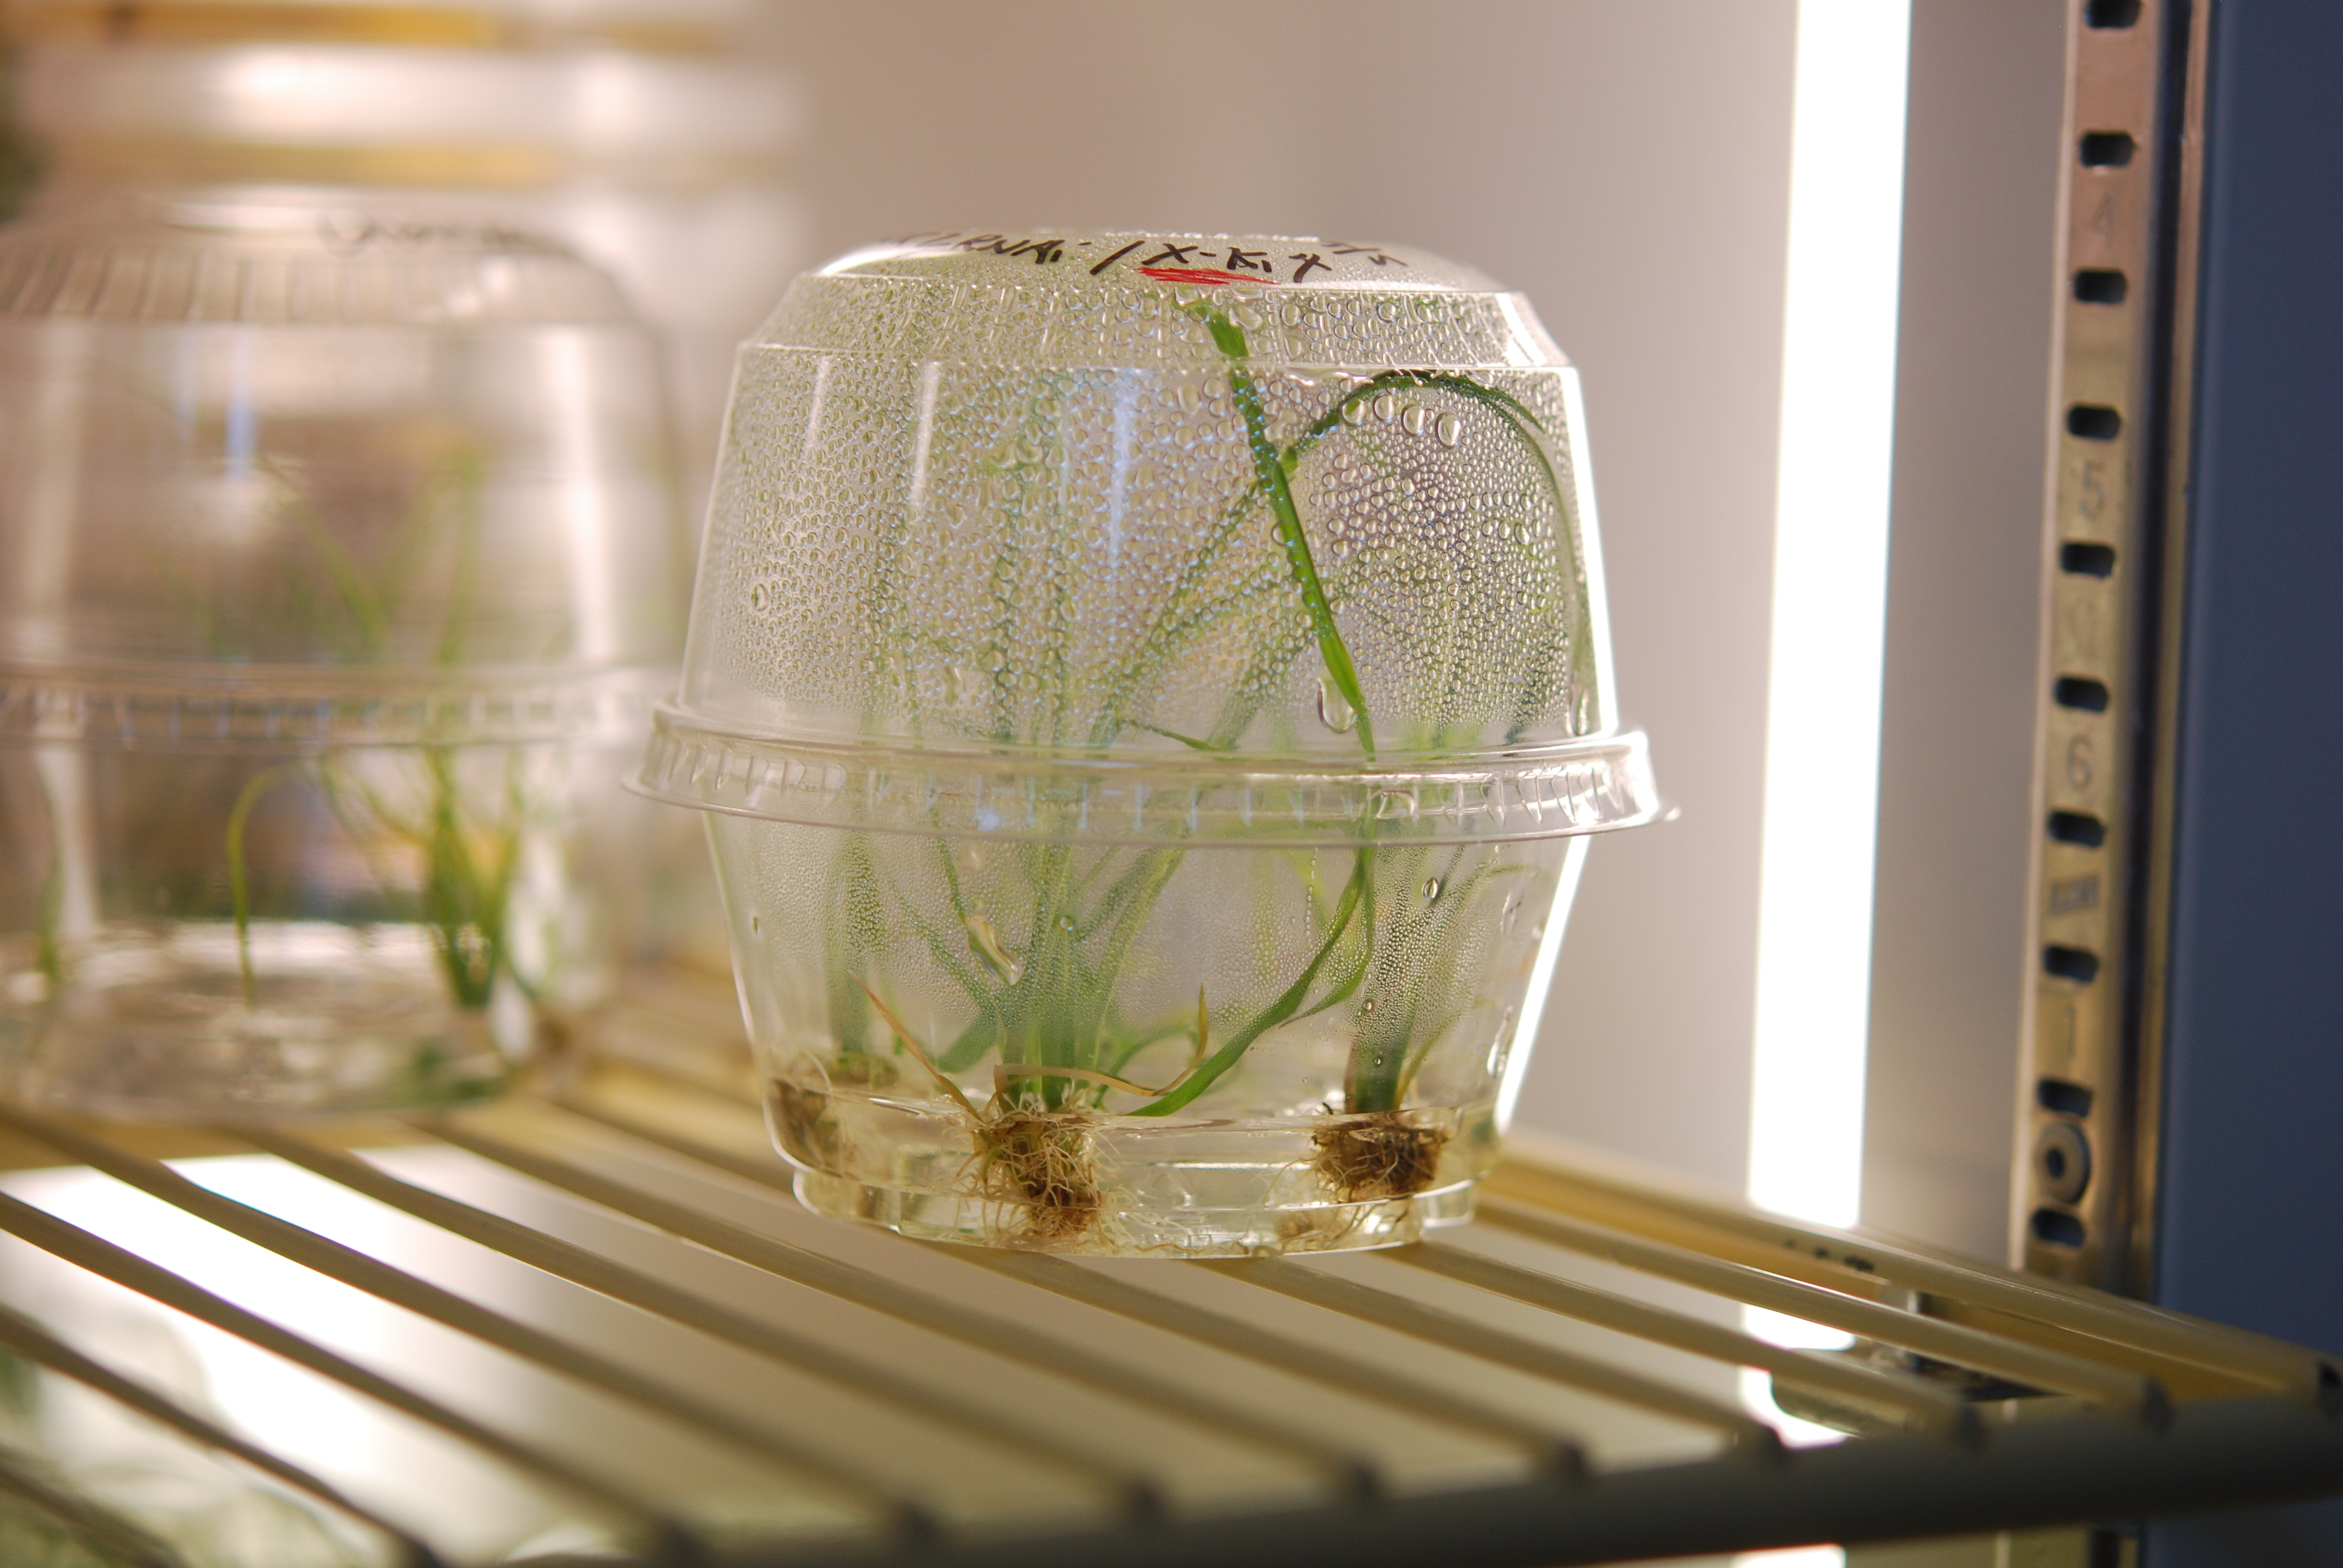 Recently engineered rice sprouting